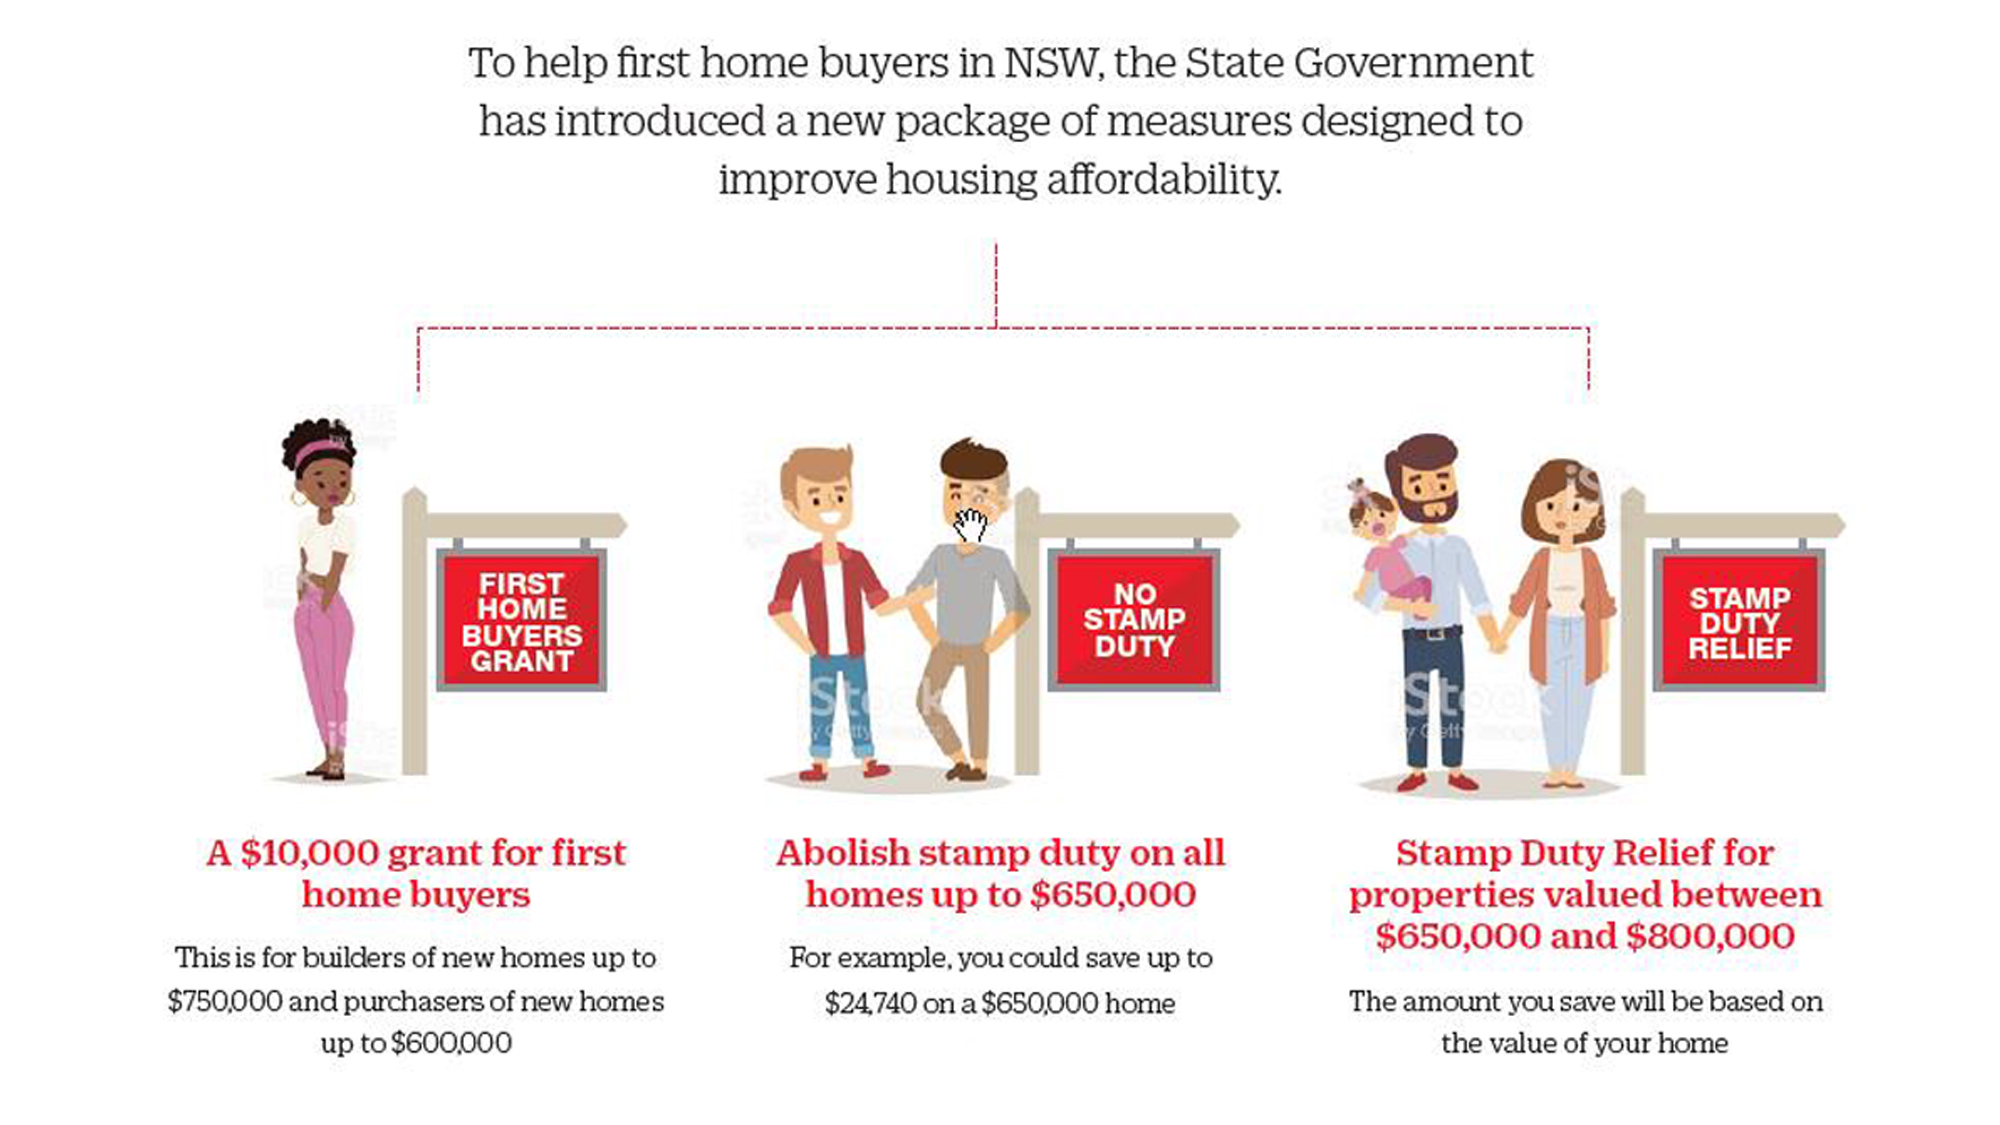 First Home Buyer incentives